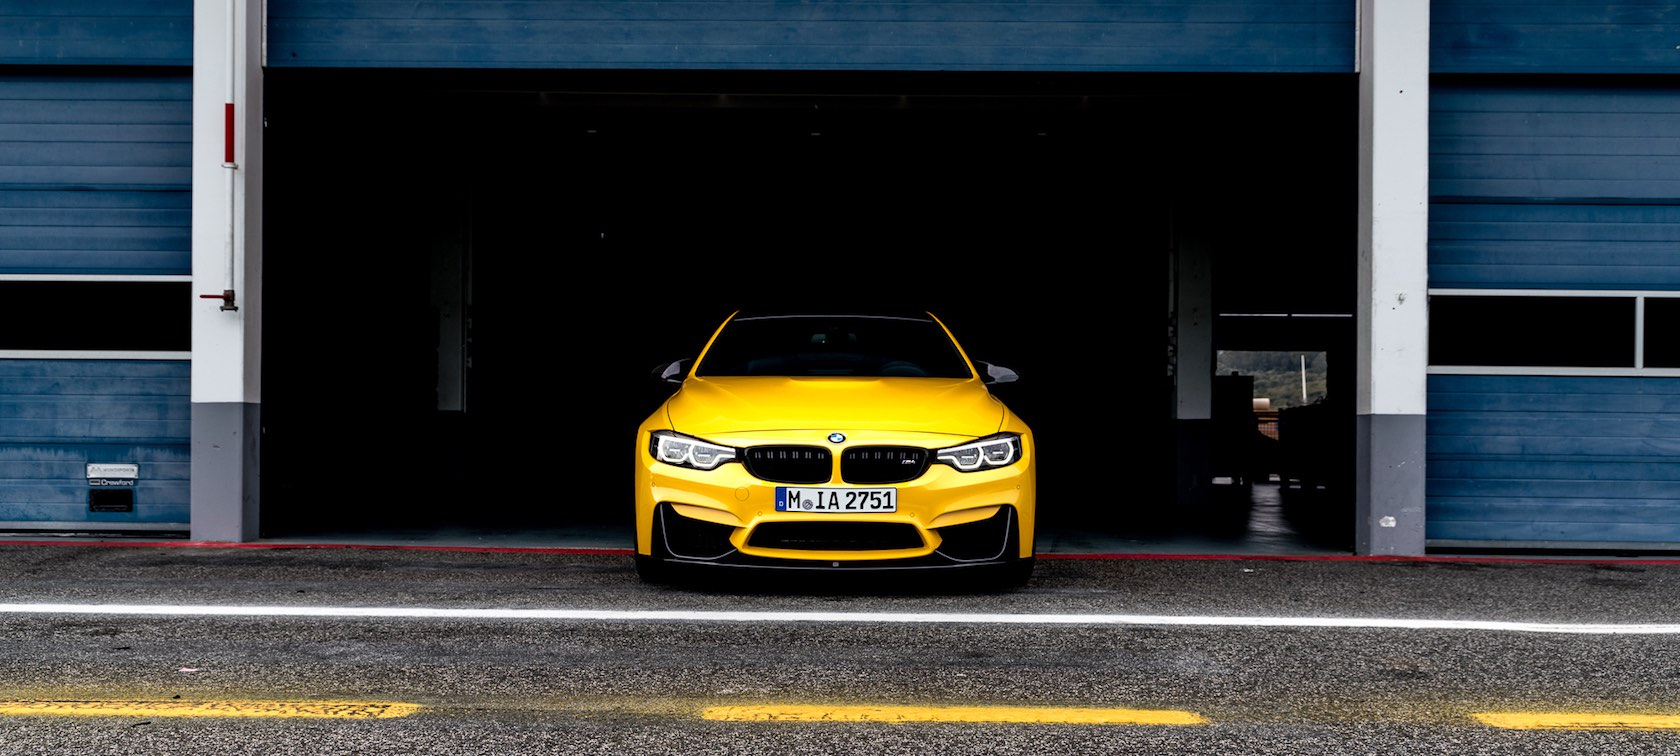 BMW M4 Coupé Speed Yellow with M Perfomance Parts